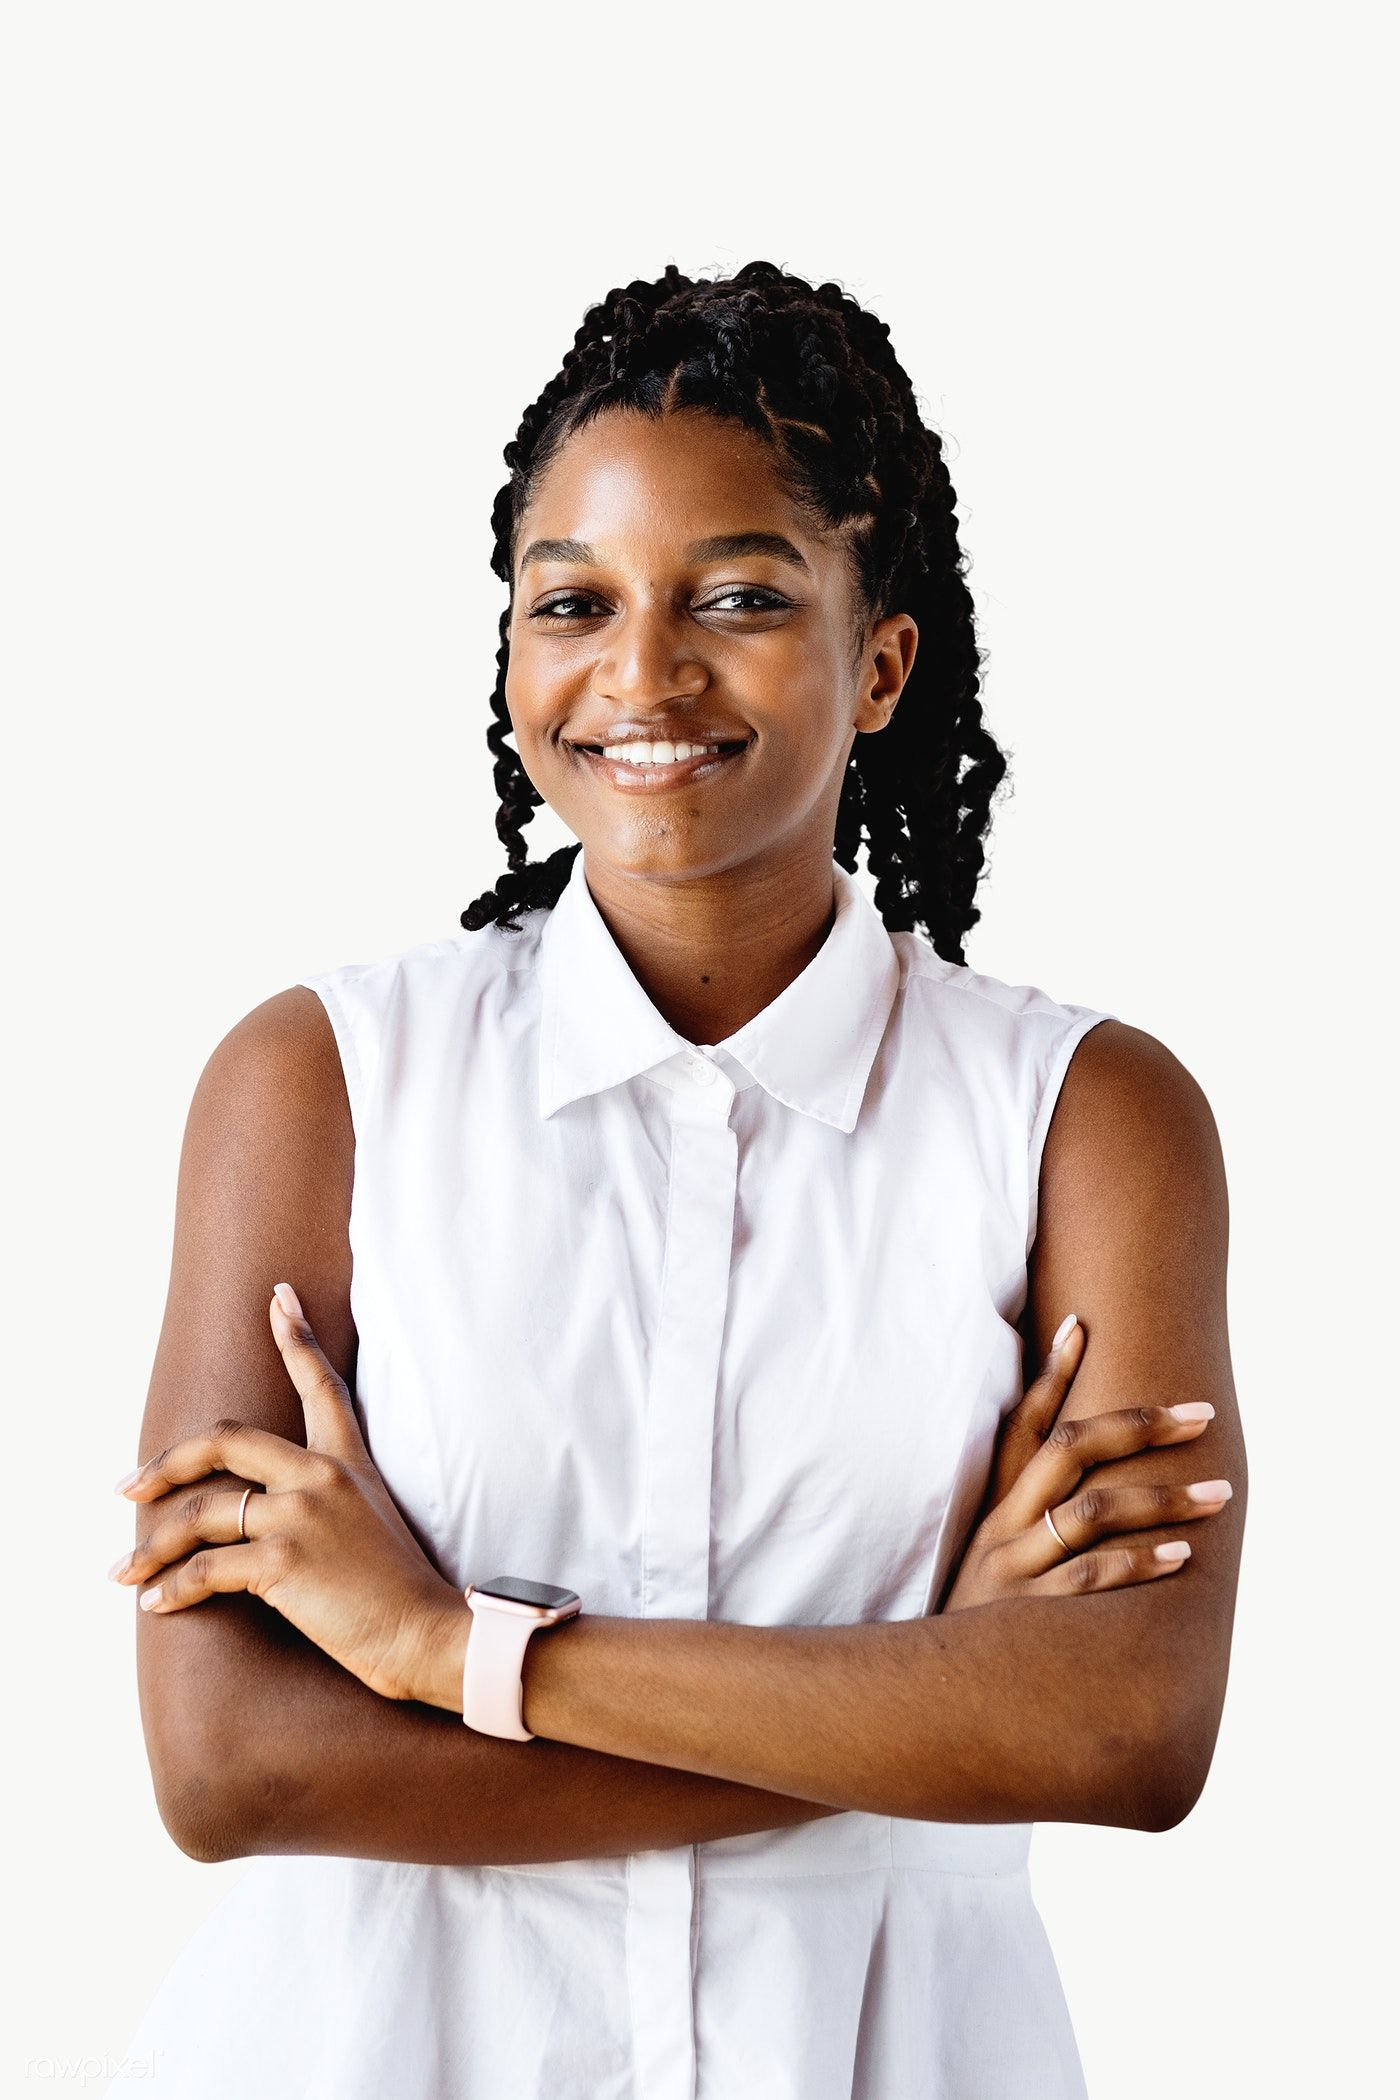 Portrait Of A Cheerful Black Woman Transparent Png Free Image By Rawpixel Com Mckinsey